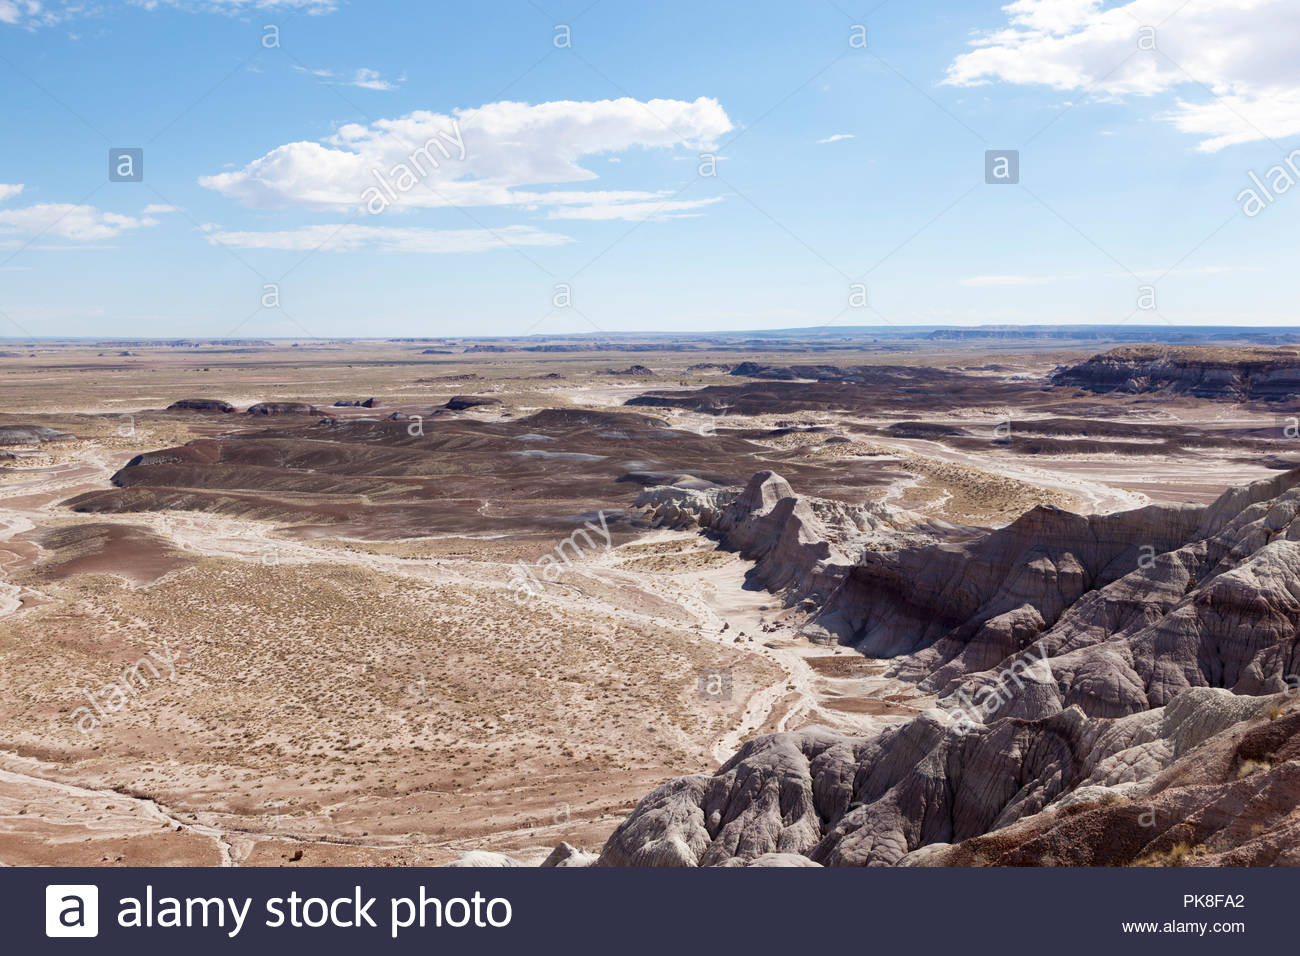 view-from-blue-mesa-petrified-forest-national-park-arizona-usa-PK8FA2.jpg